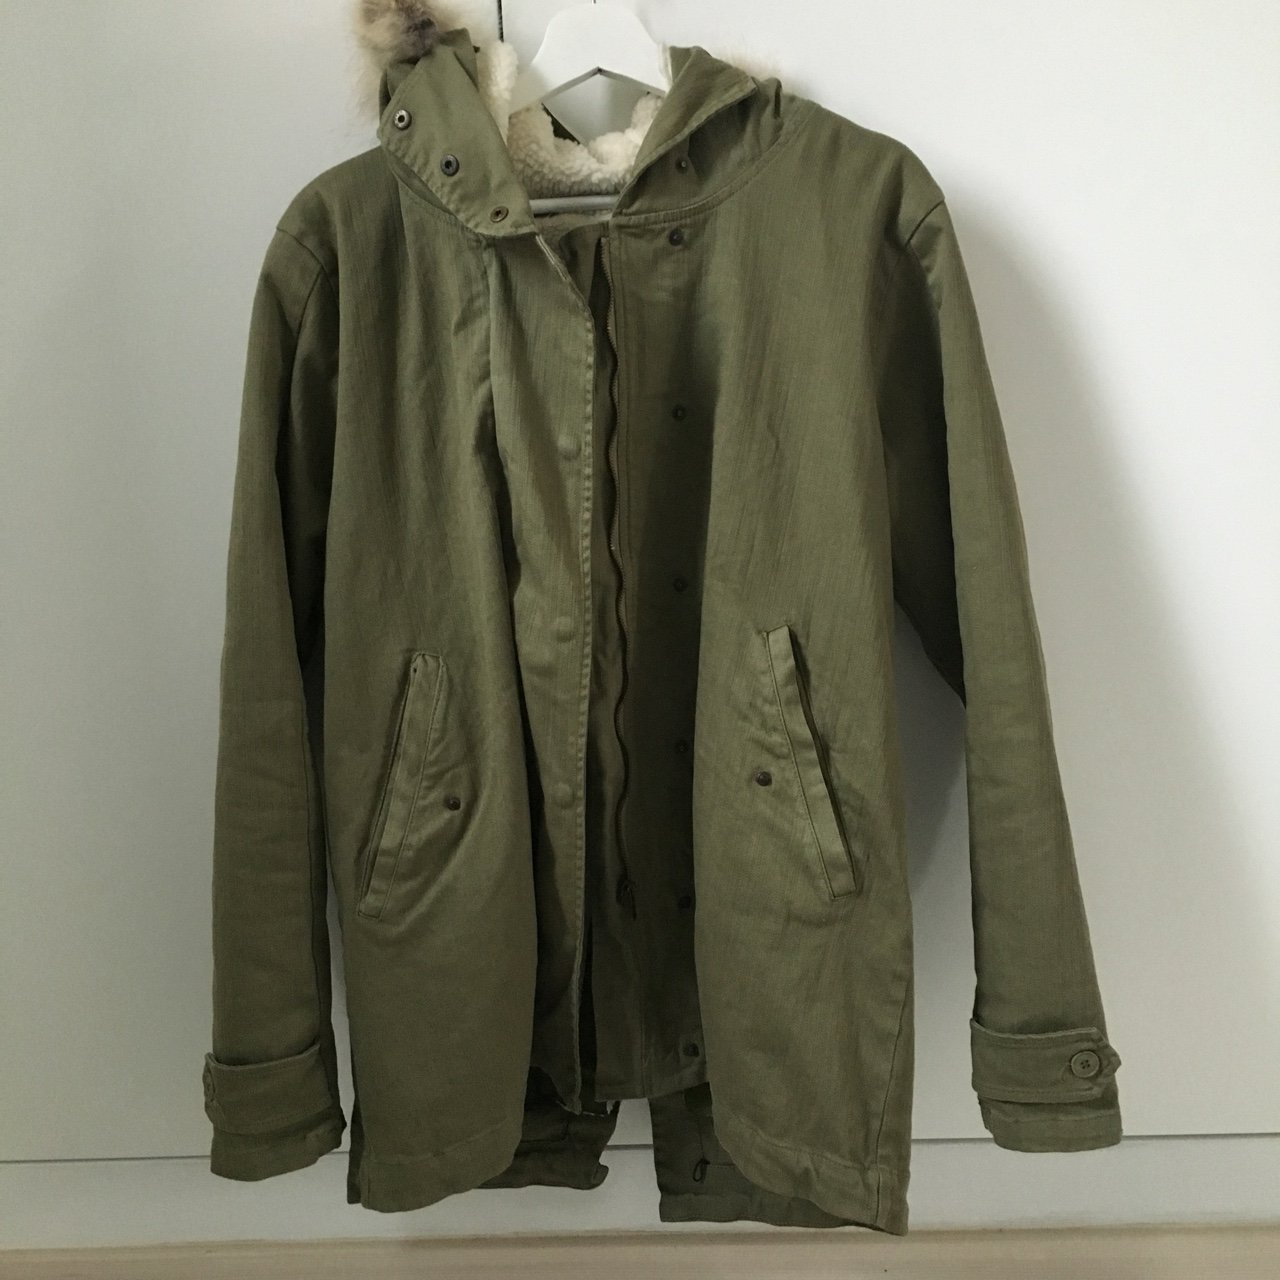 Parka Veste Listed On Depop By Mary Lou15